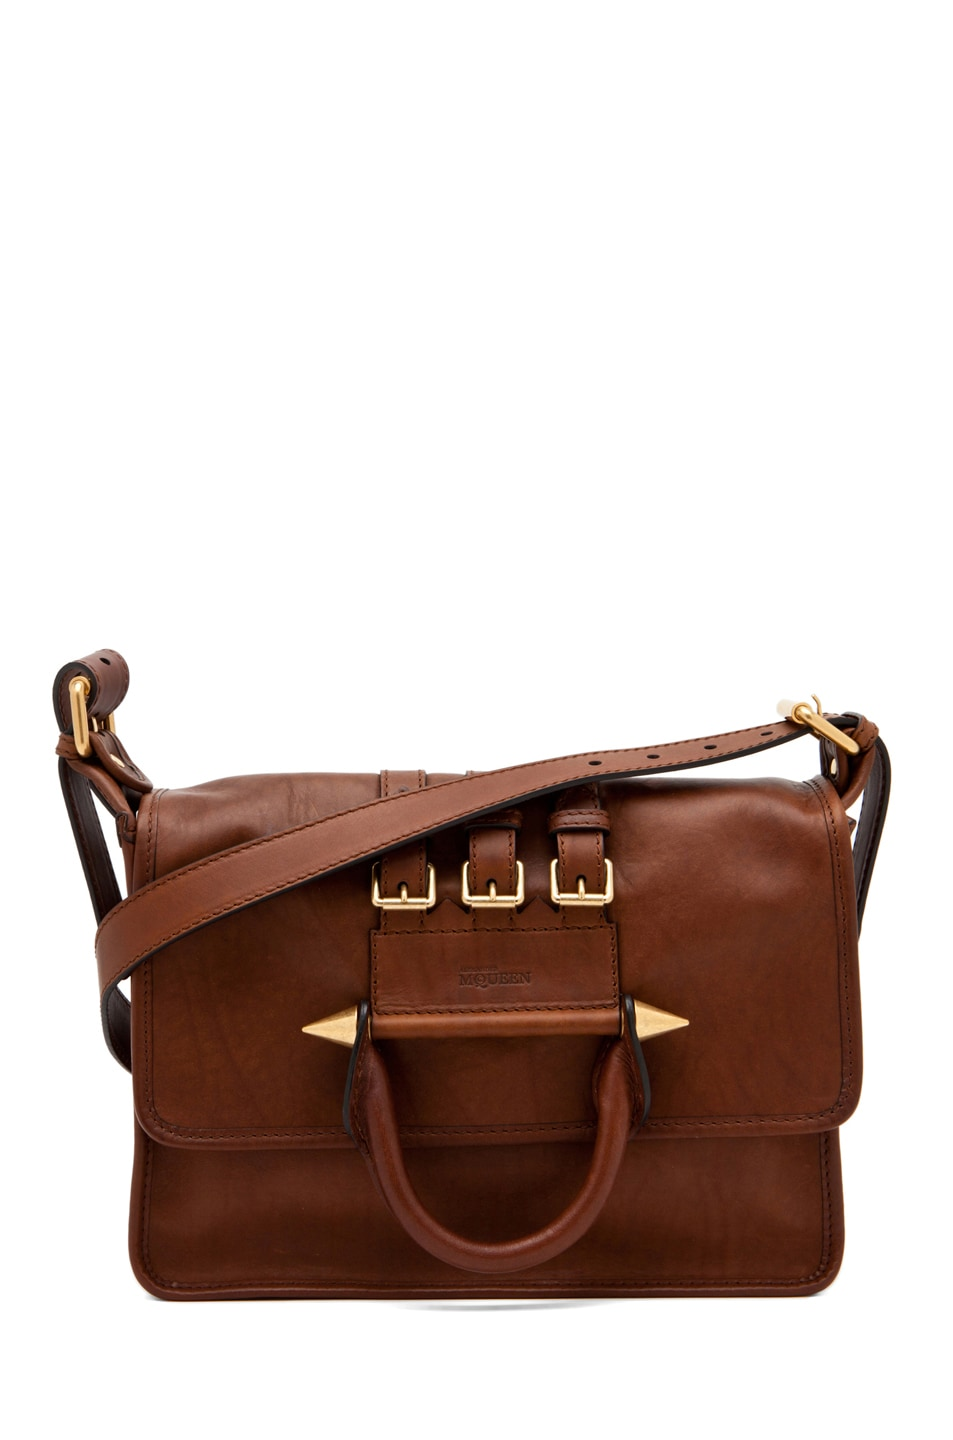 Image 1 of Alexander McQueen Crossbody Satchel in Cigar